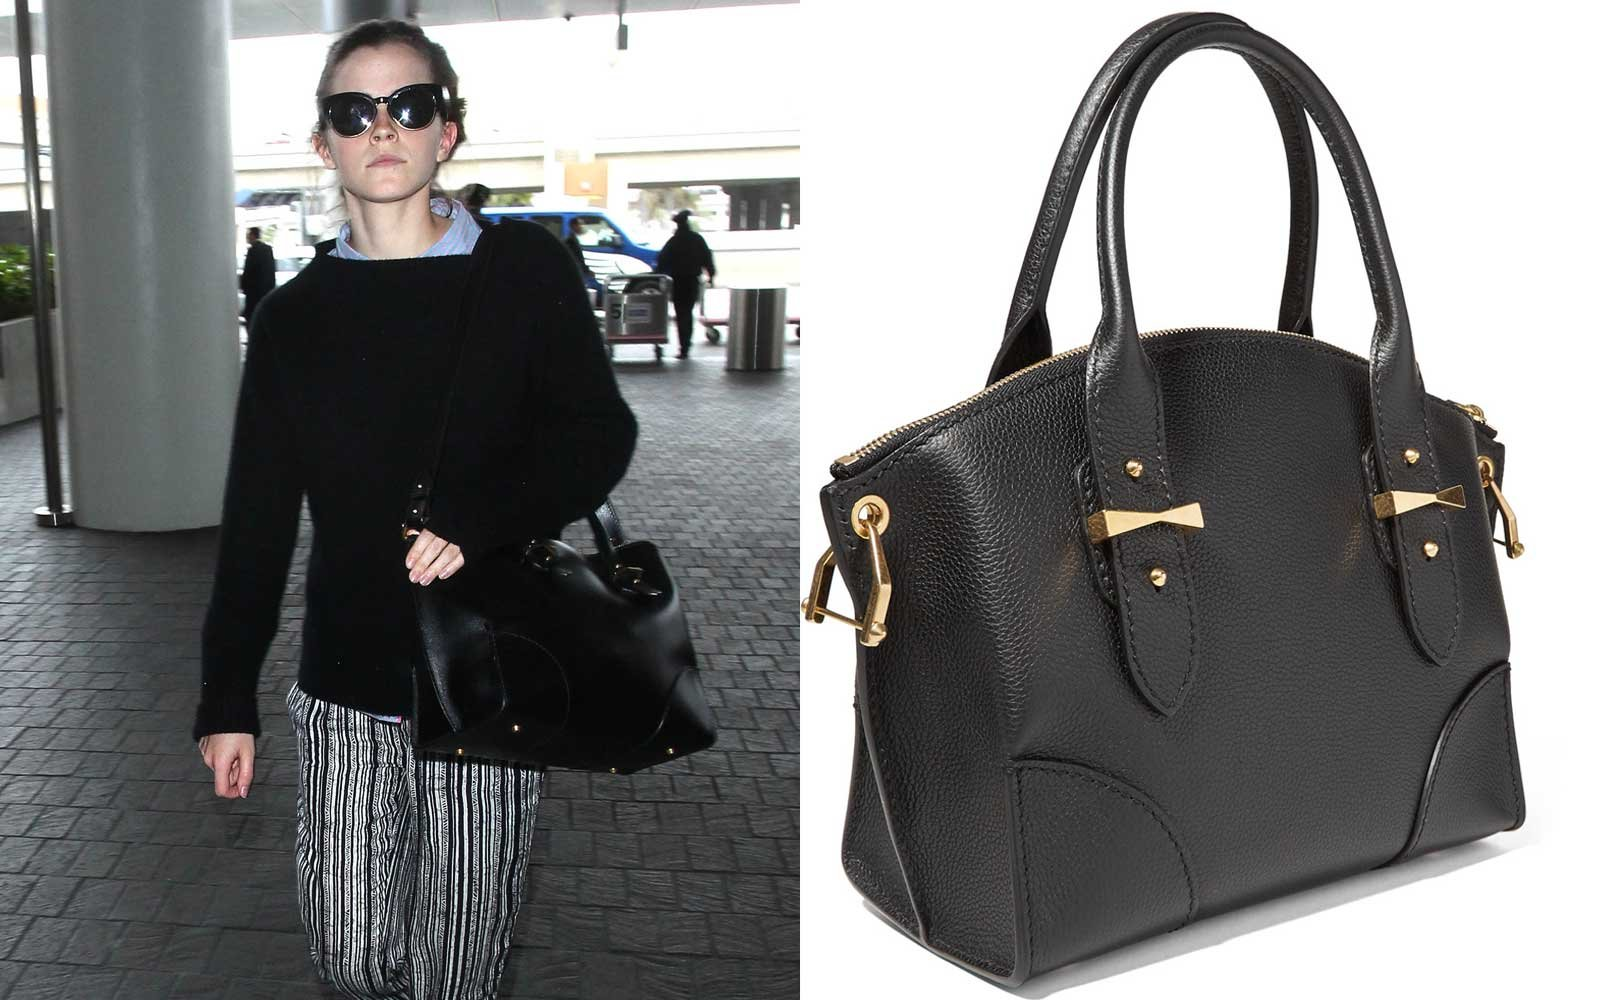 Celebrities' Favorite Shoes, Handbags and Jewelry | PEOPLE.com